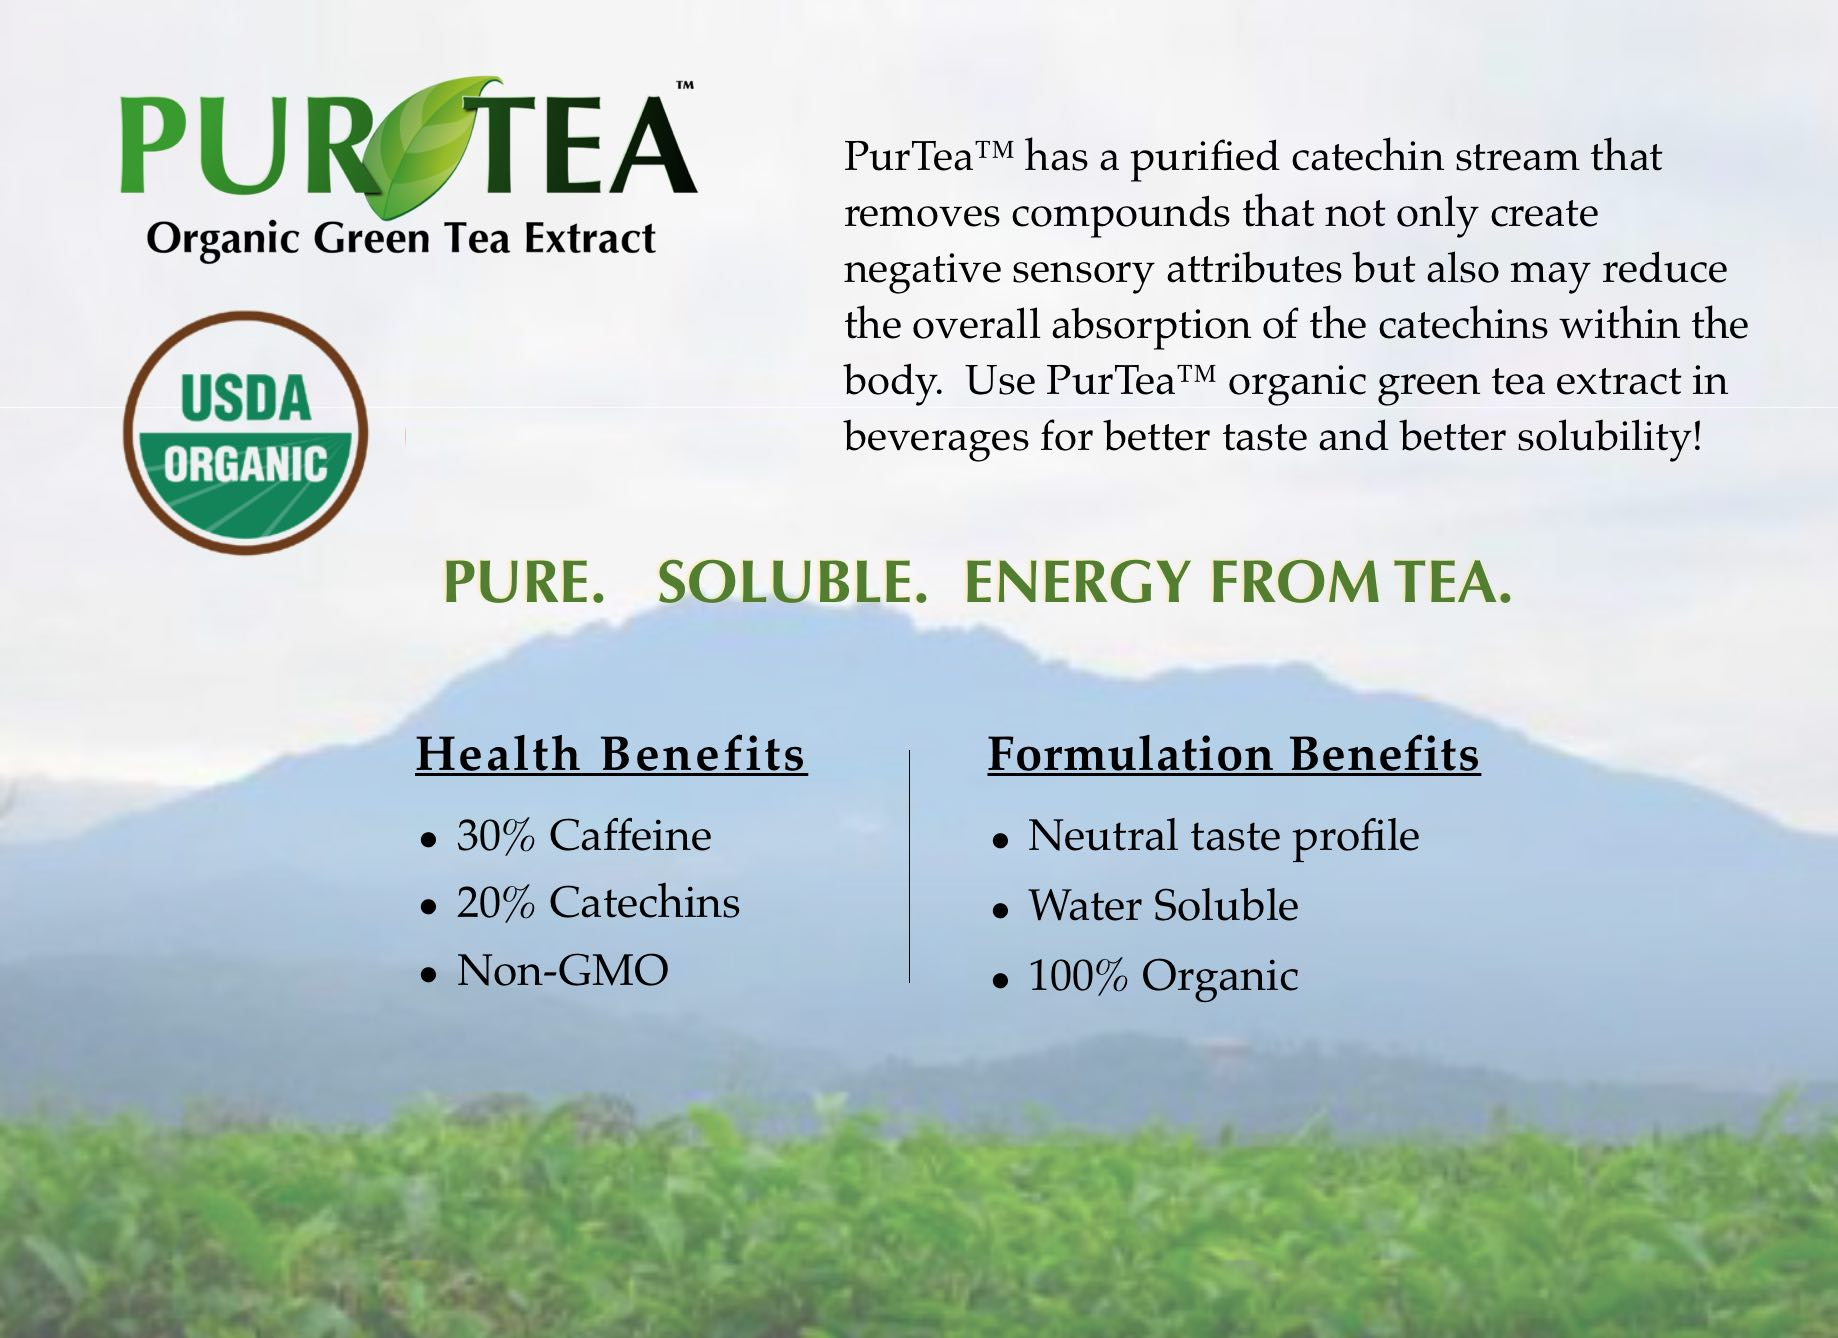 PurTea Organic Green Tea Extract for Beverages